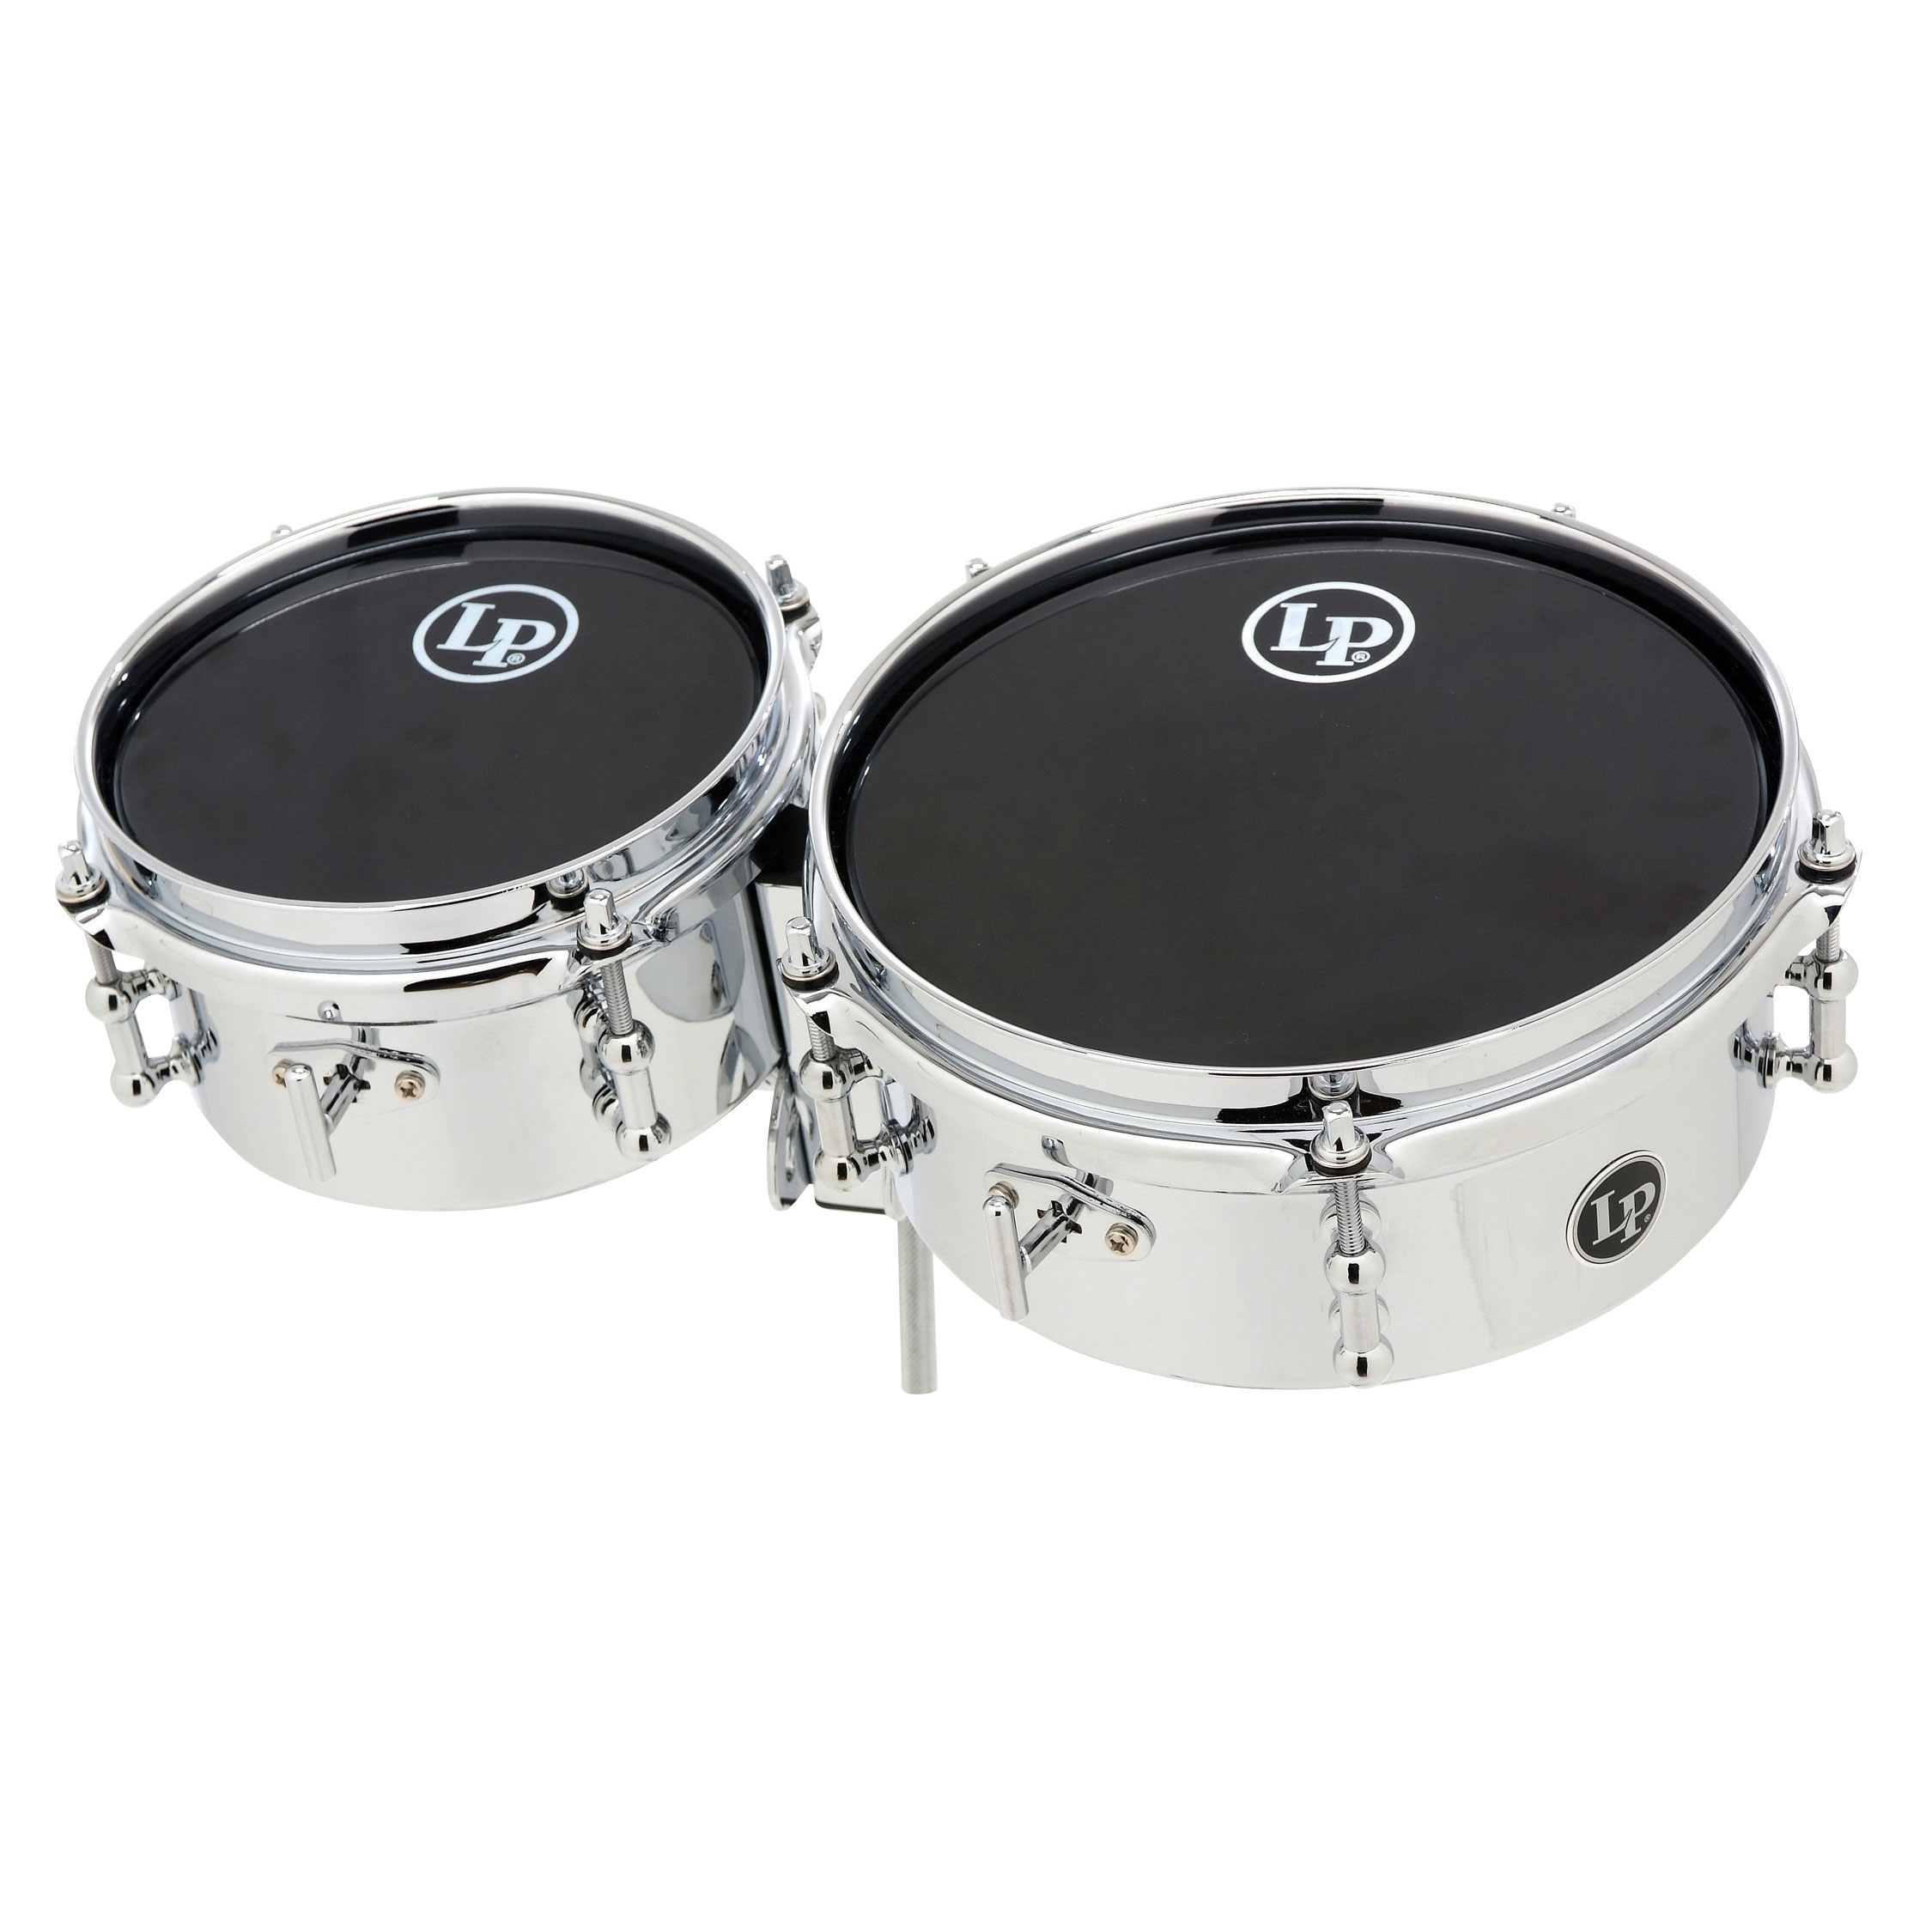 LP Mini Timbales with Mount